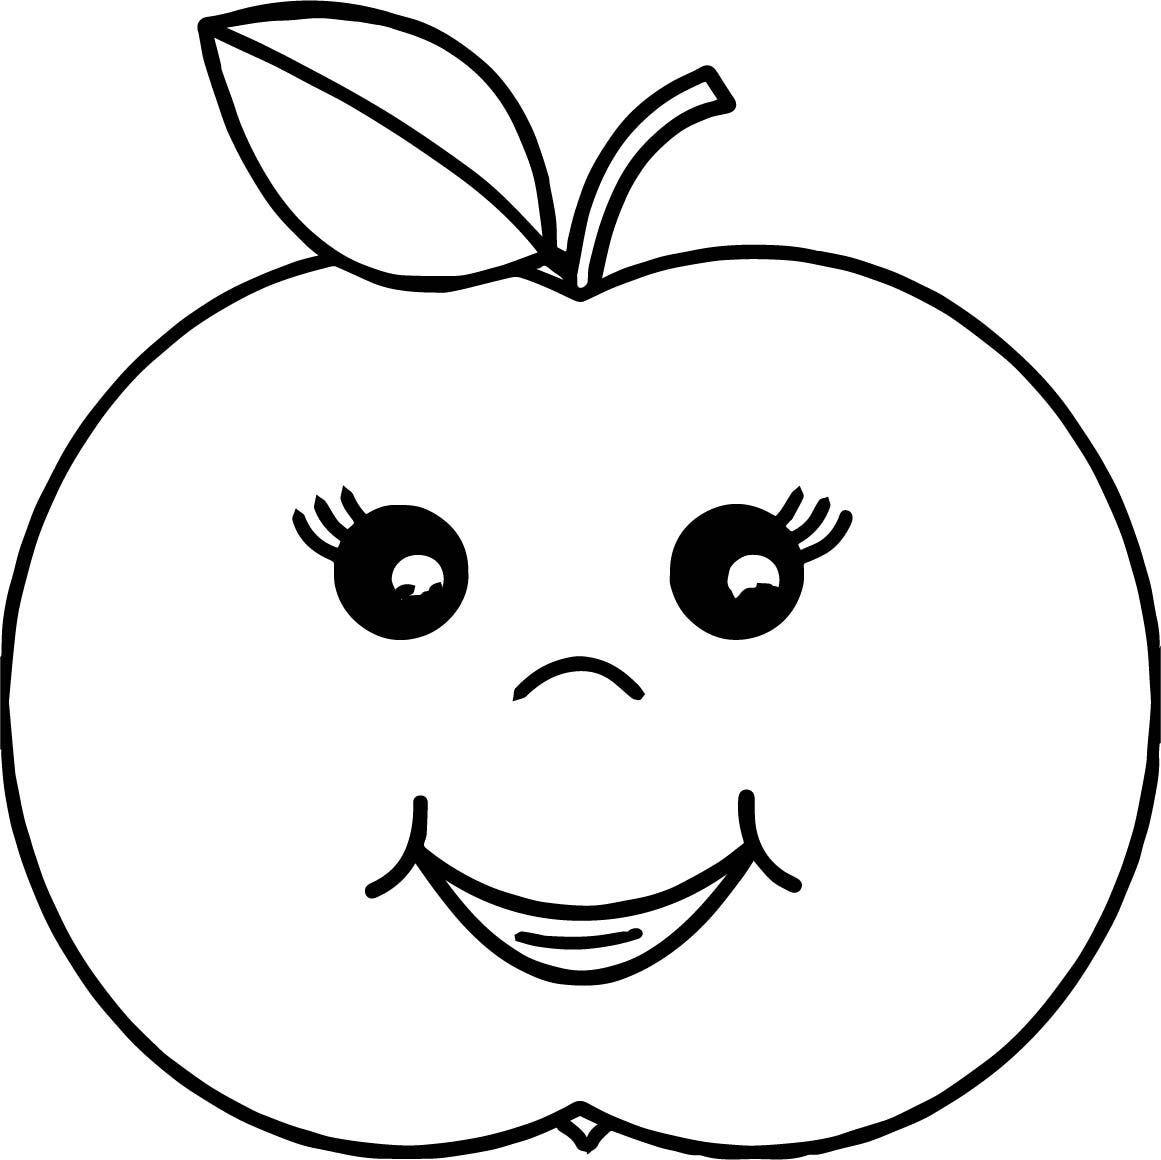 Cartoon Apple Coloring Pages : Cartoon girl apple coloring page wecoloringpage